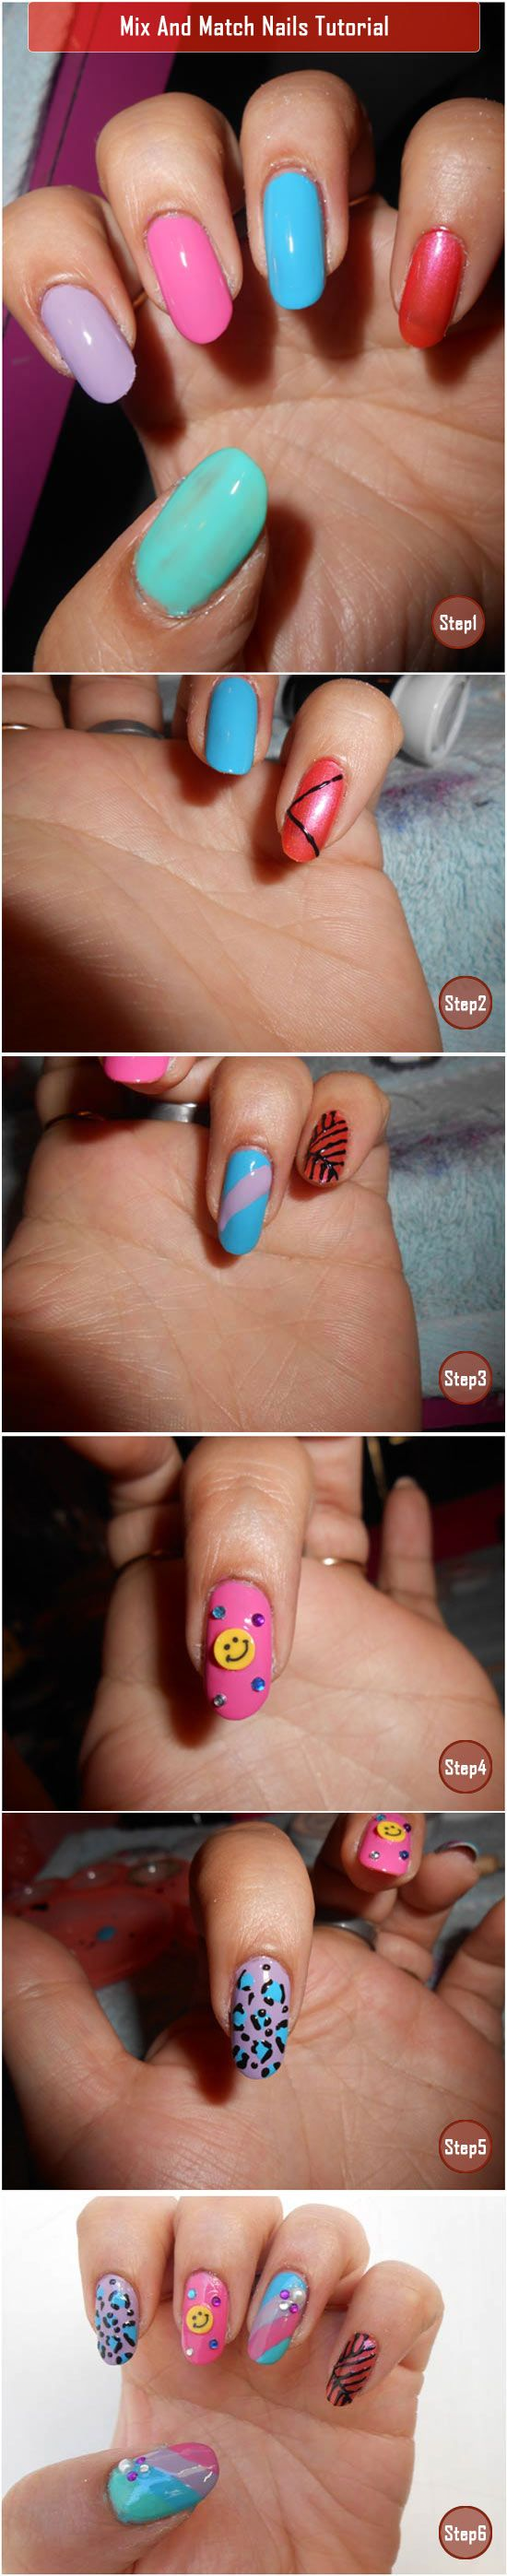 Mix And Match Nails Tutorial